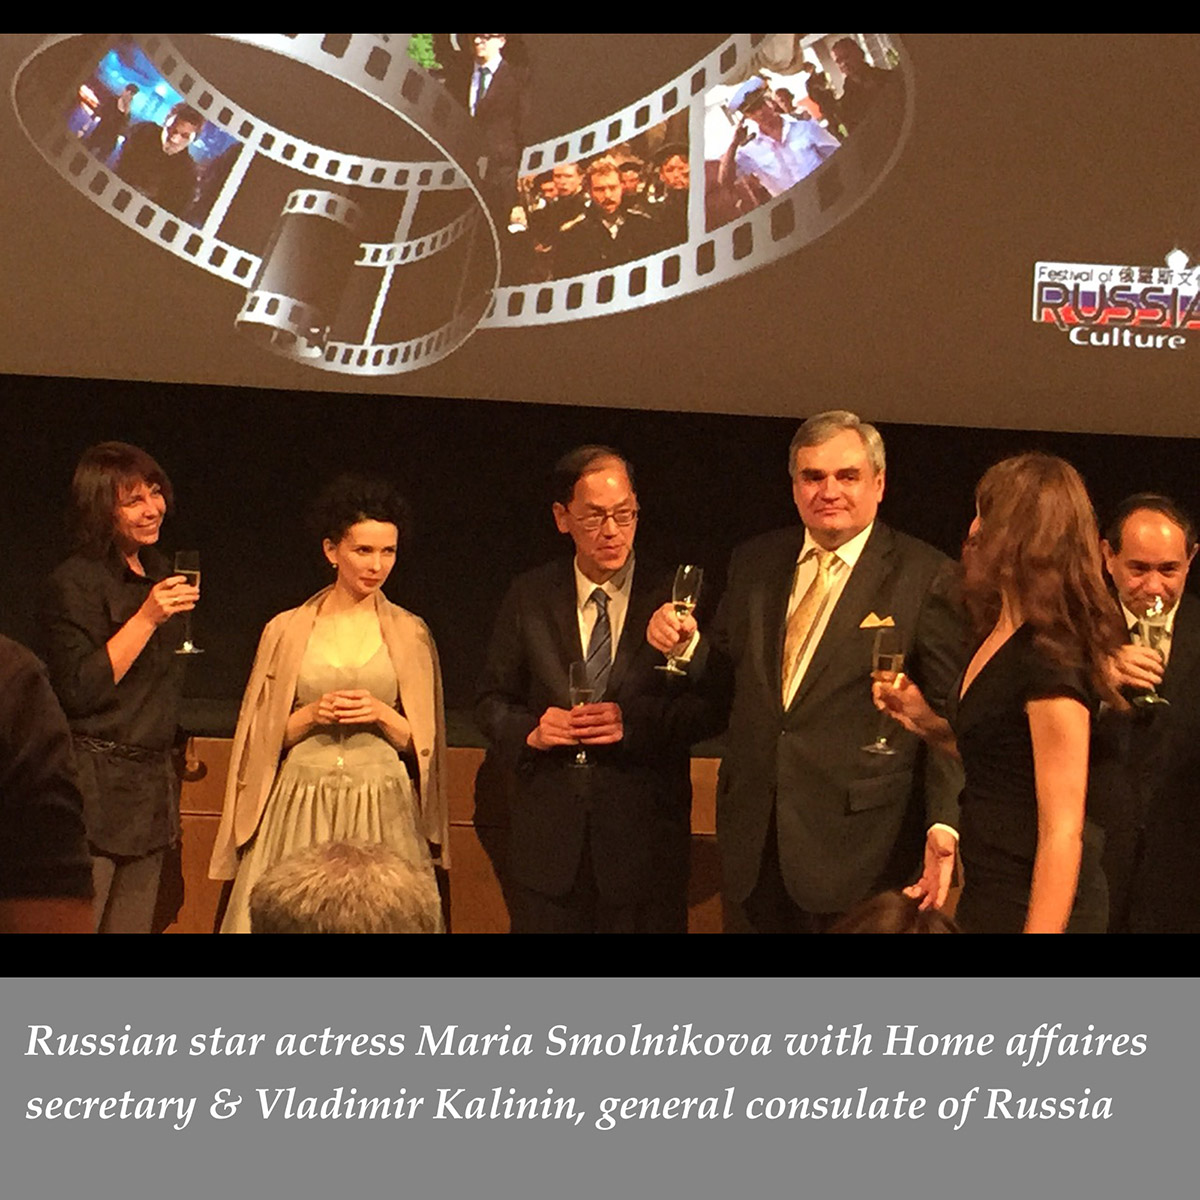 Russian-star-actress-Maria-Smolnikova-with-Home-affaires-secretary-and-Vladimir-Kalinin-general-consulate-of-Russia